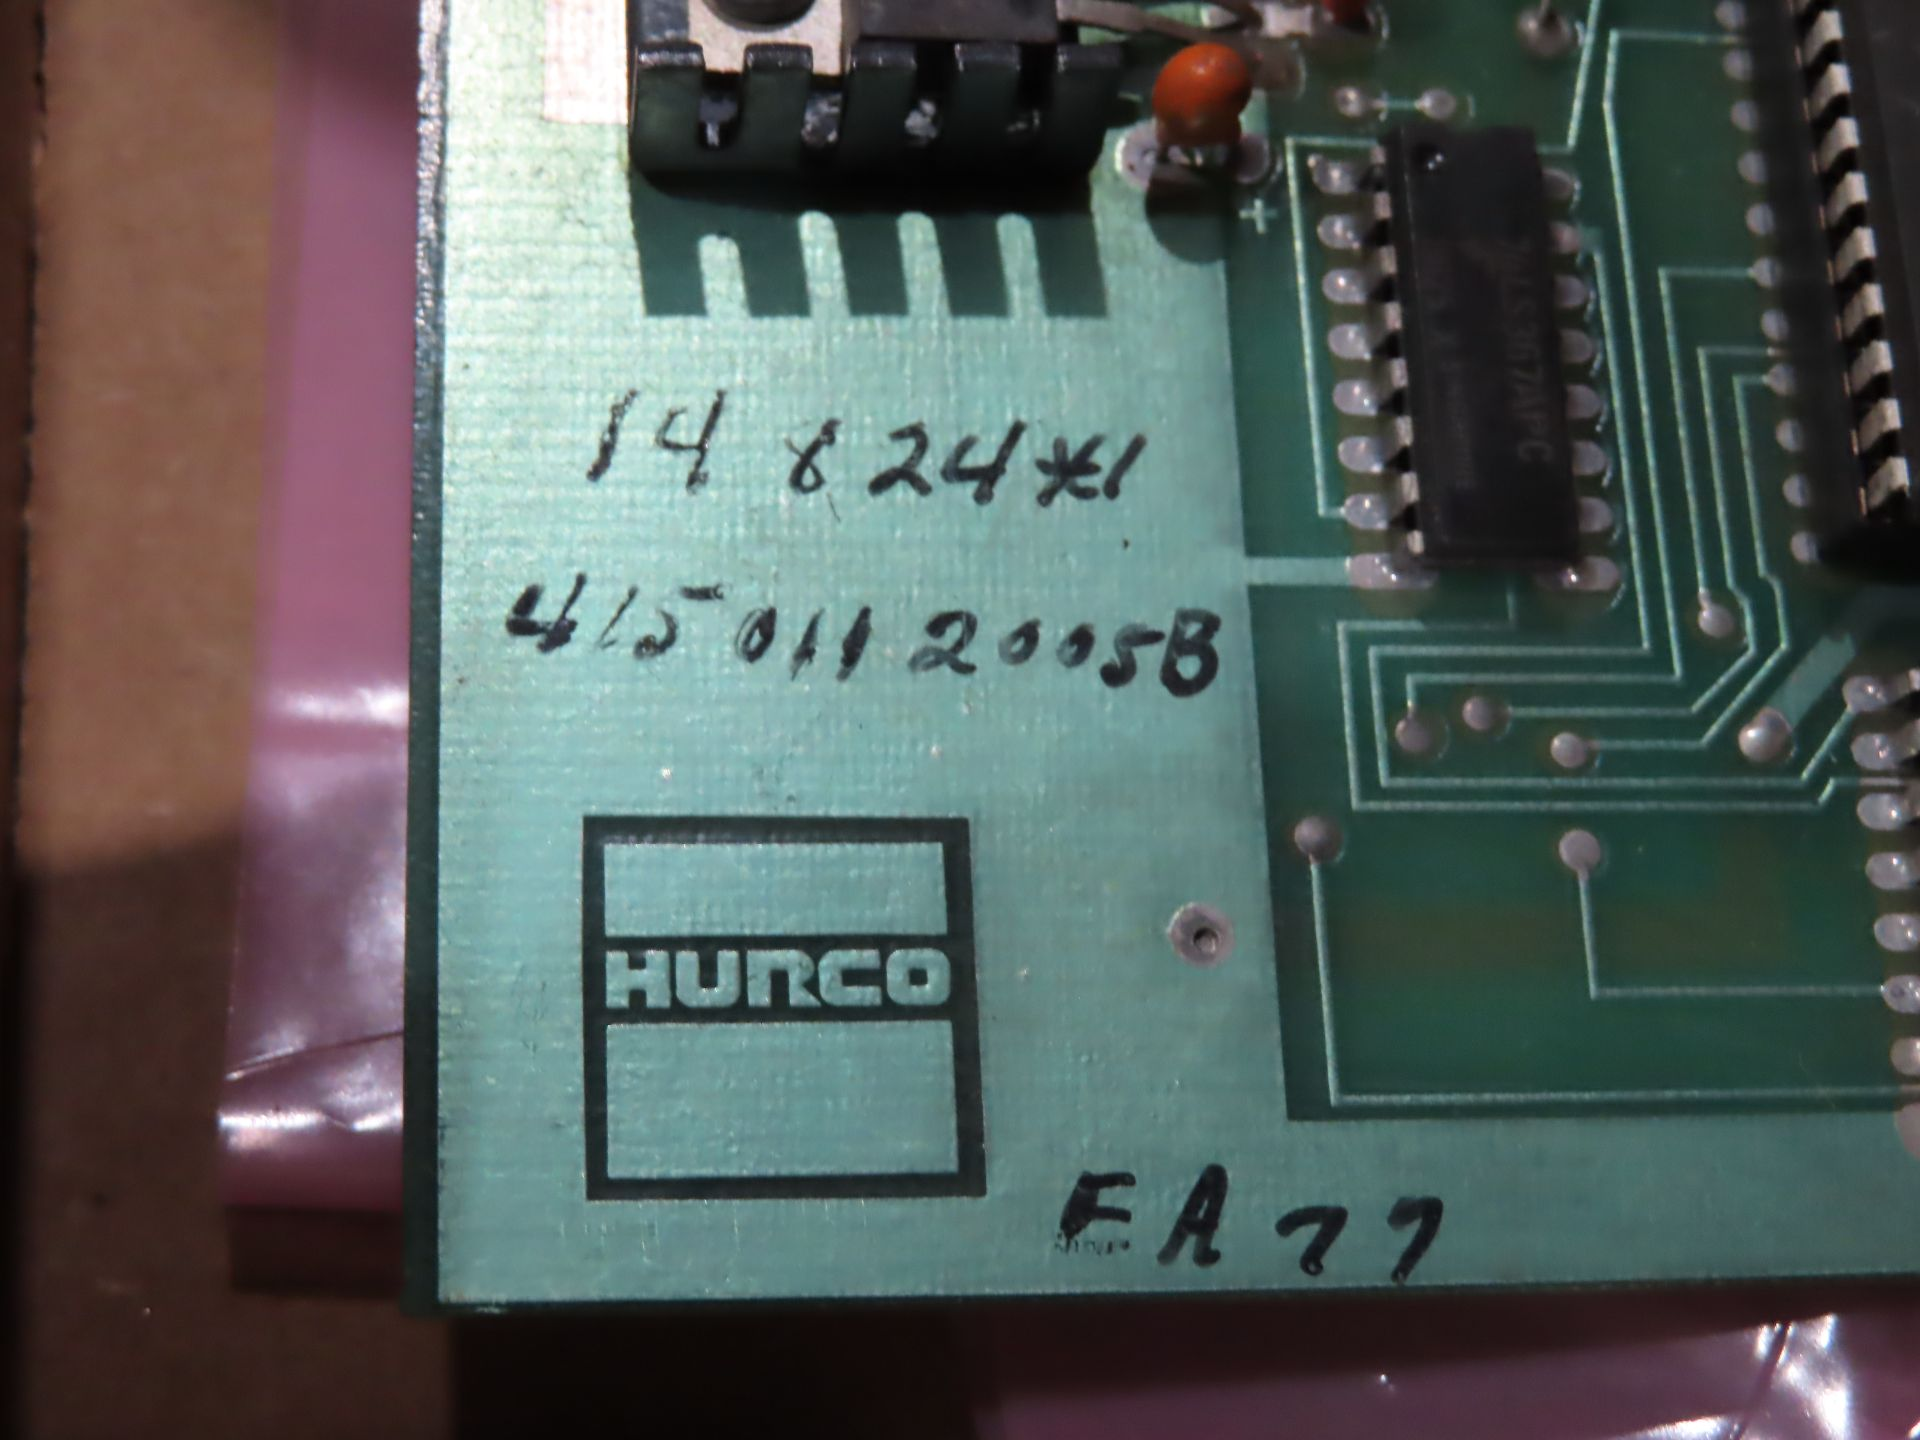 Lot 36 - Hurco model 4140031001B processor board, as always, with Brolyn LLC auctions, all lots can be picked